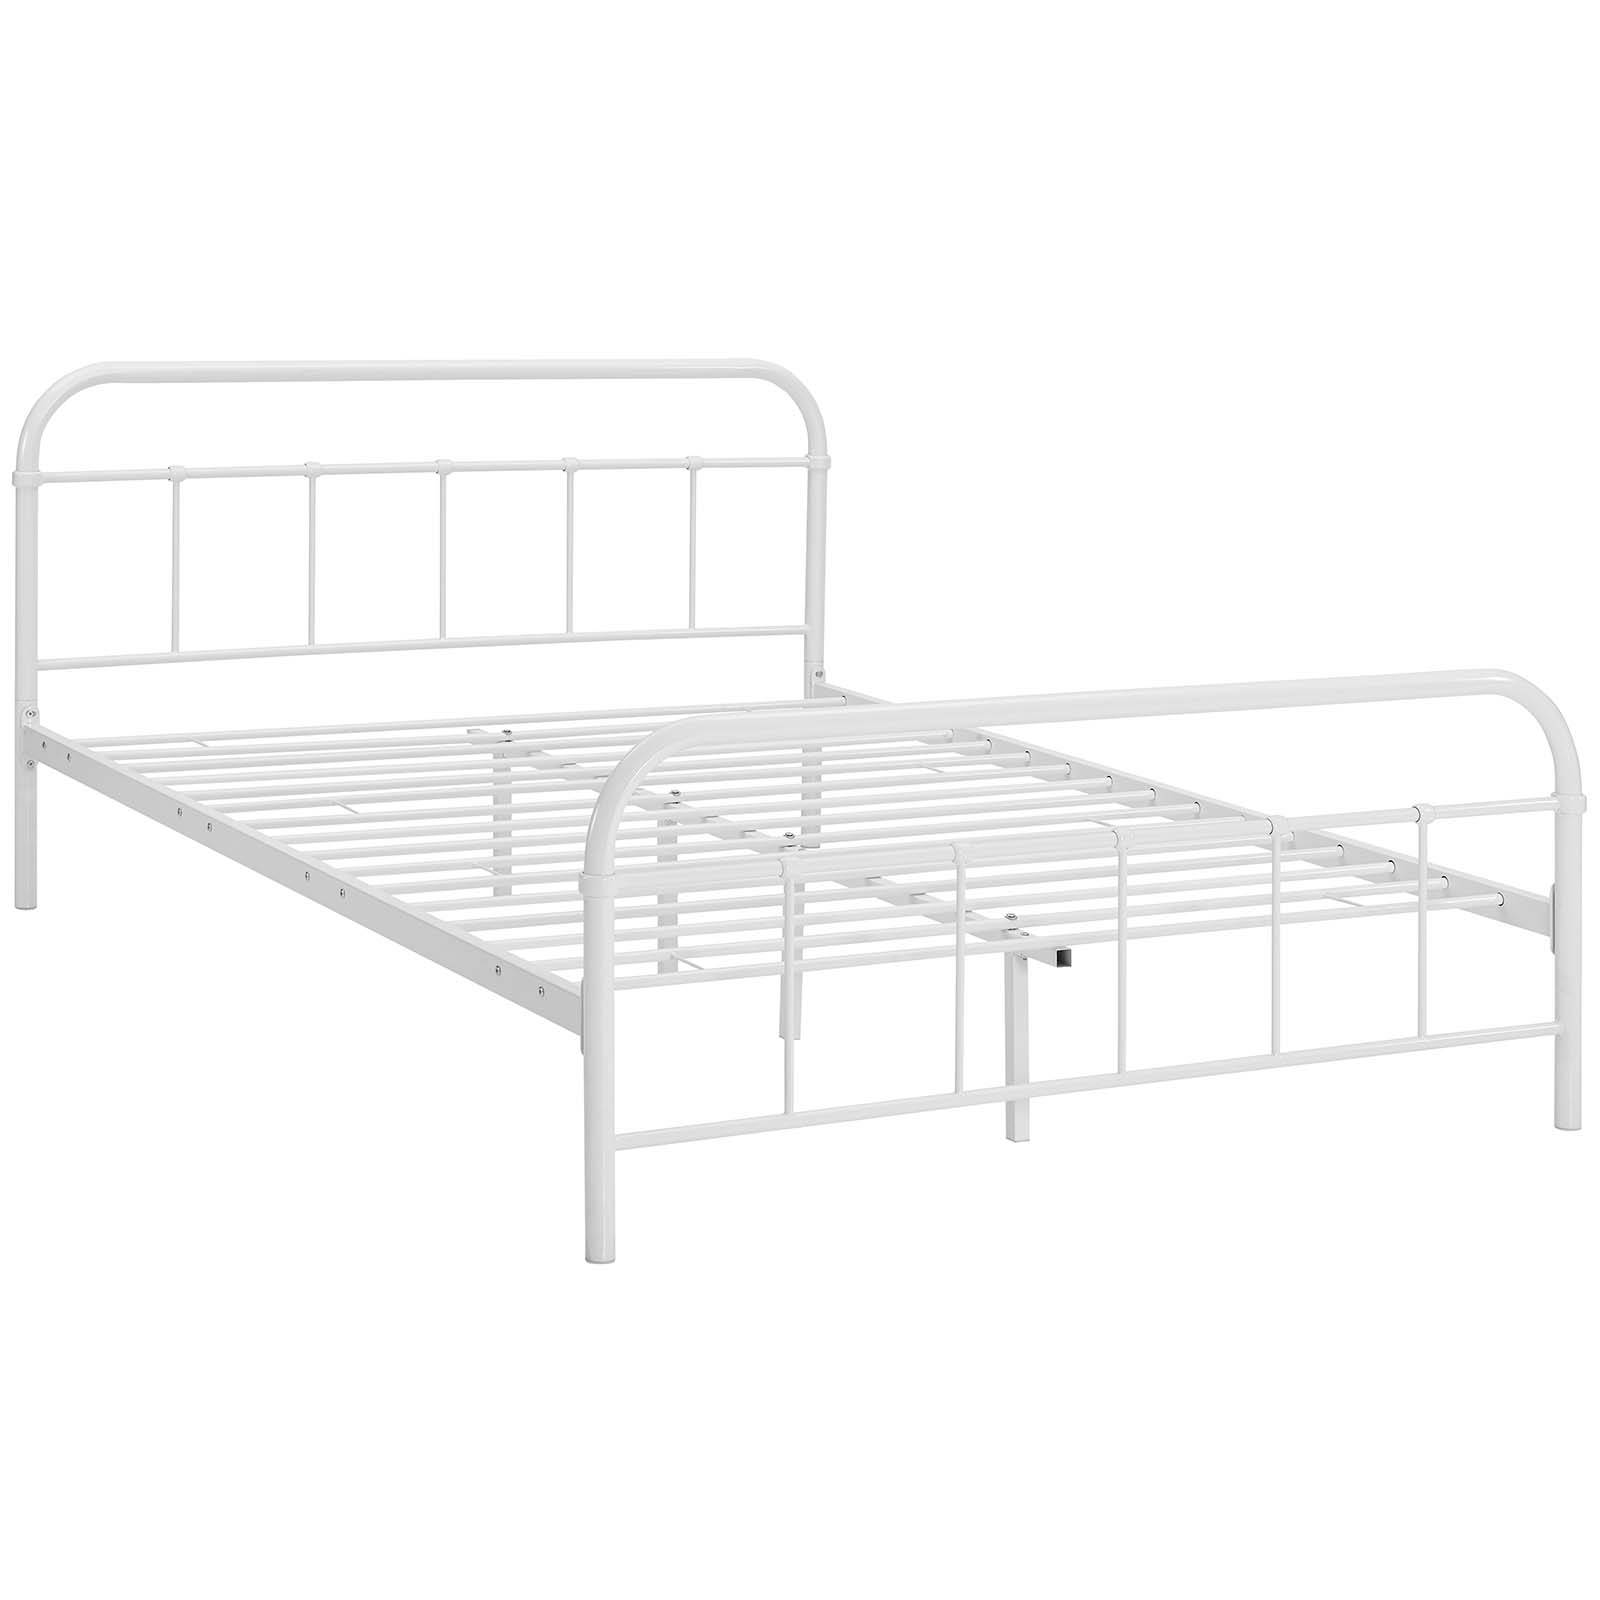 b98222ae4db0 Modway Furniture Maisie White Queen Stainless Steel Bed Frame | The ...